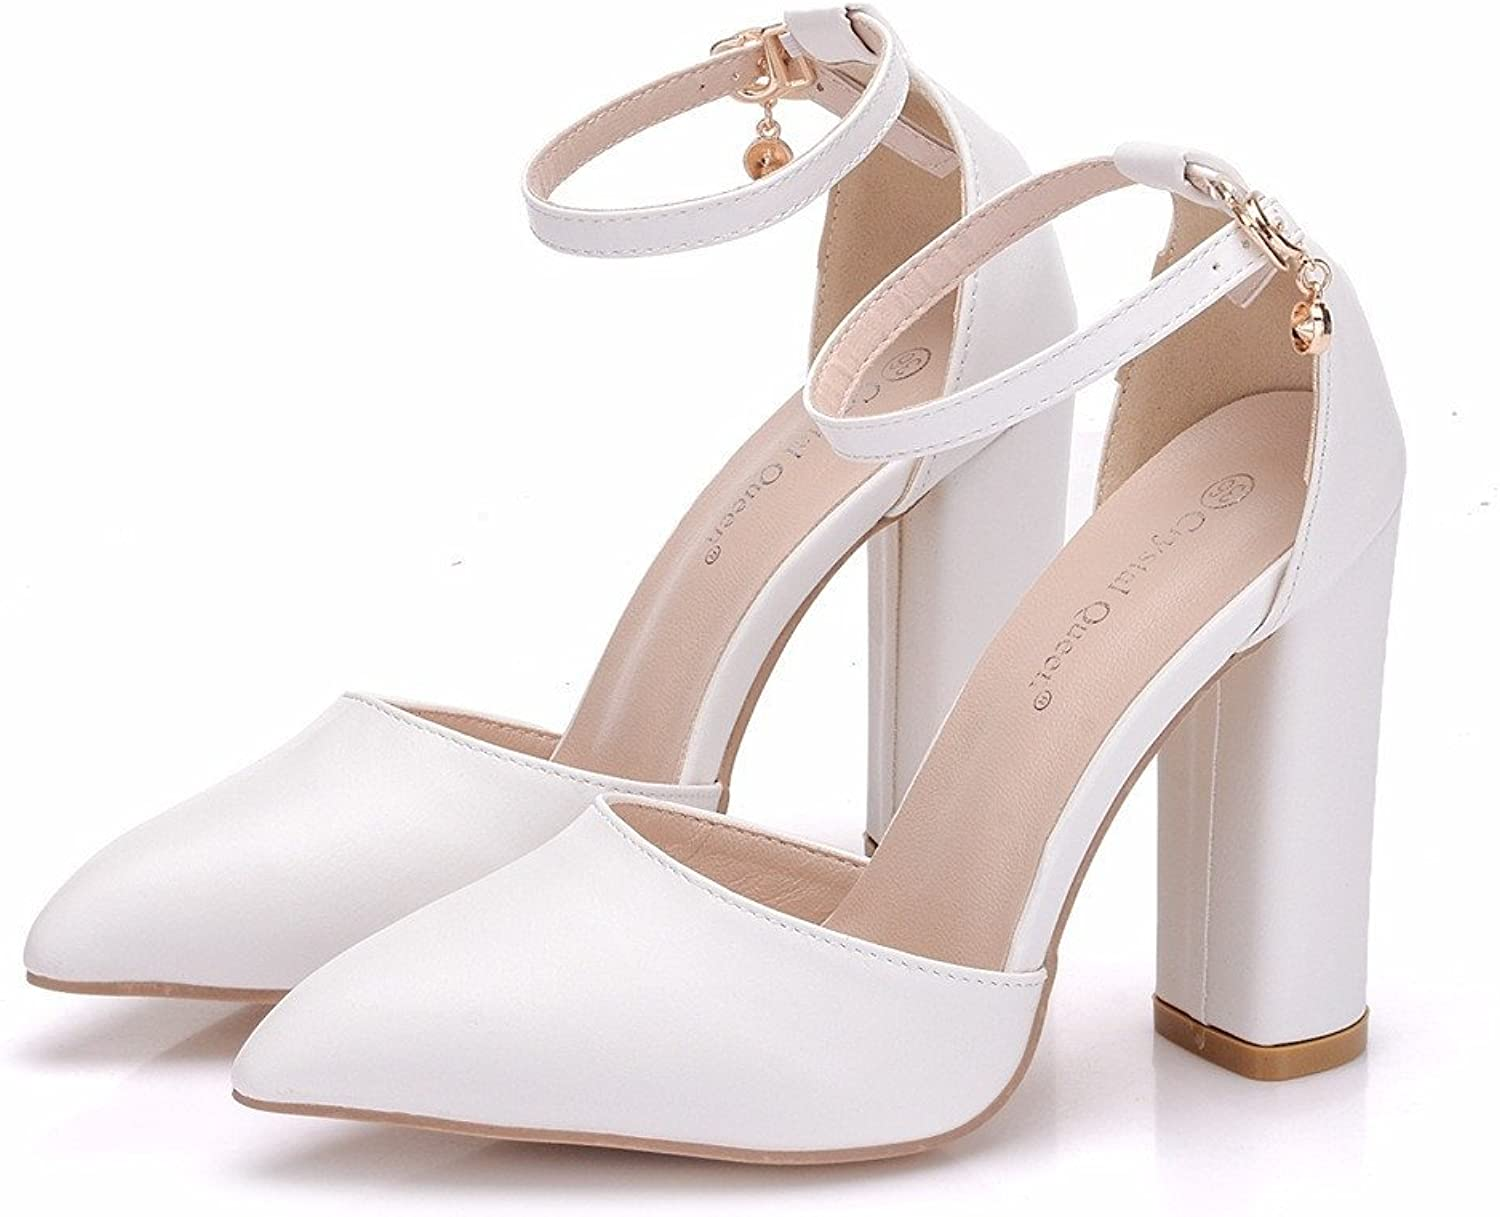 HYP Wedding Women shoes Wedding shoes Women Pumps Closed Toe Wedding Party Court shoes Bridesmaid Bridal shoes Coarse and fine-Point high-Heel shoes